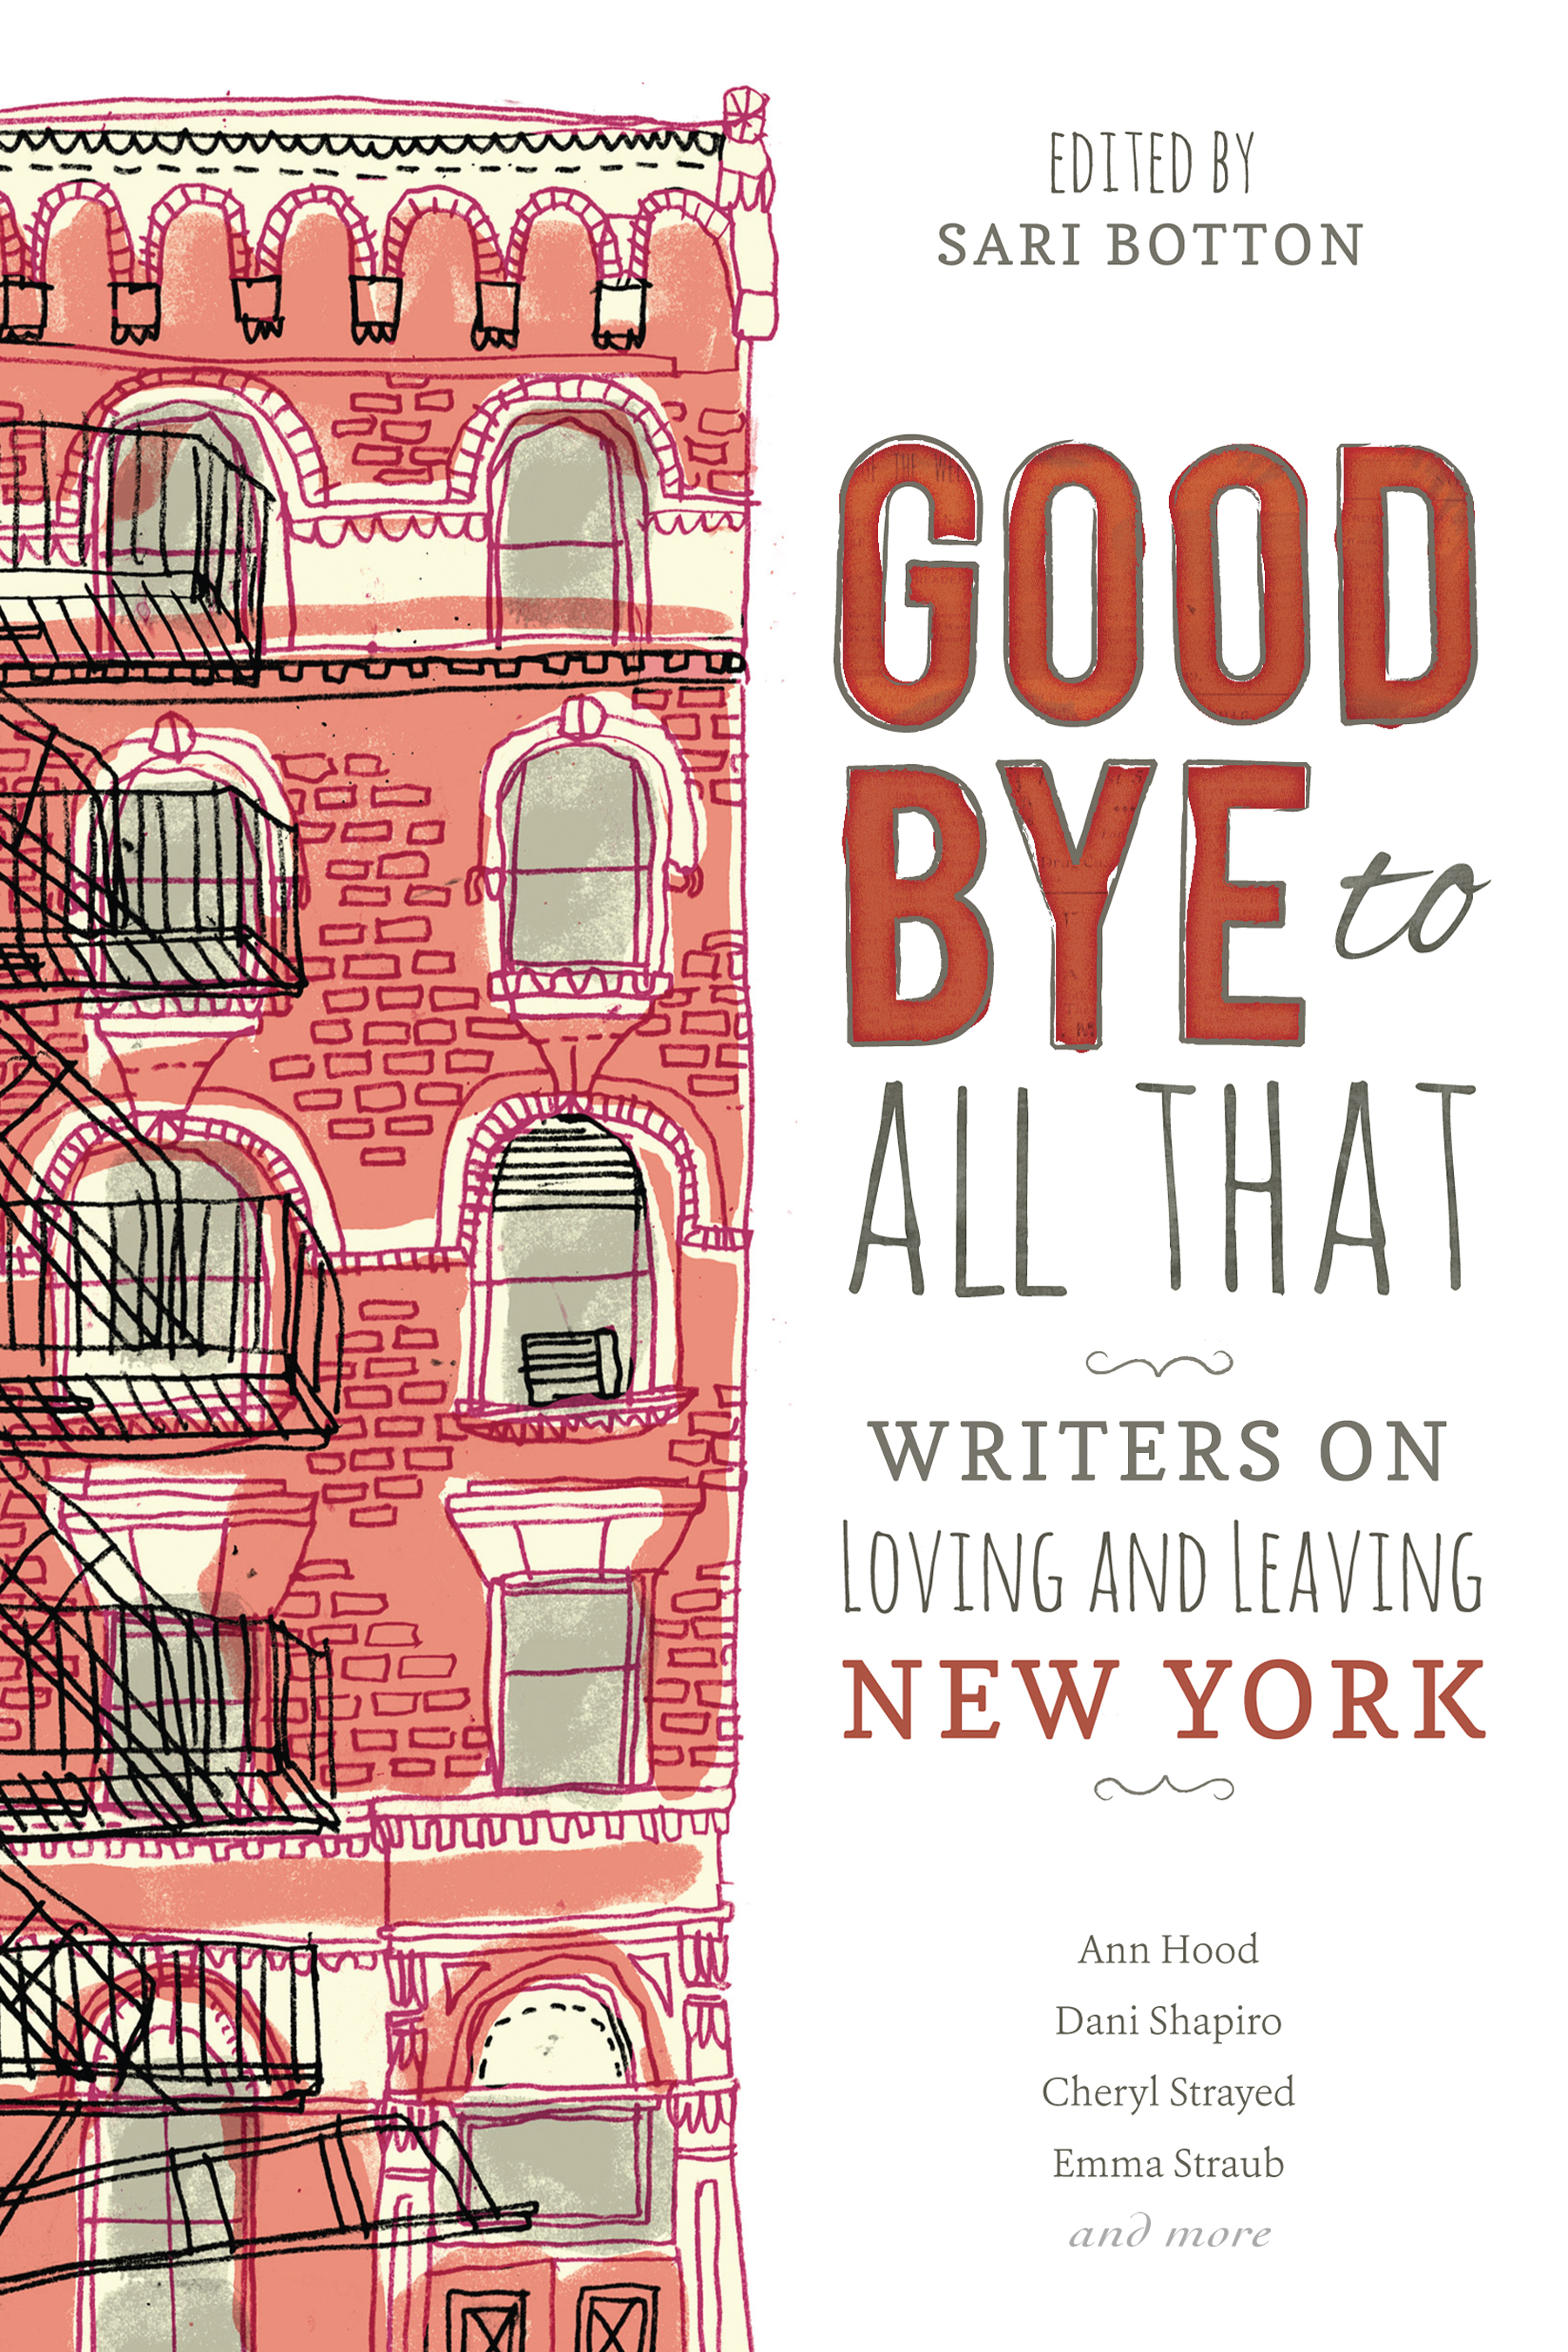 Book Launch: Goodbye to All That: Writers on Loving and Leaving New York edited by Sari Botton, with Meghan Daum, Emily Gould, Emily Carter Roiphe and Melissa Febos